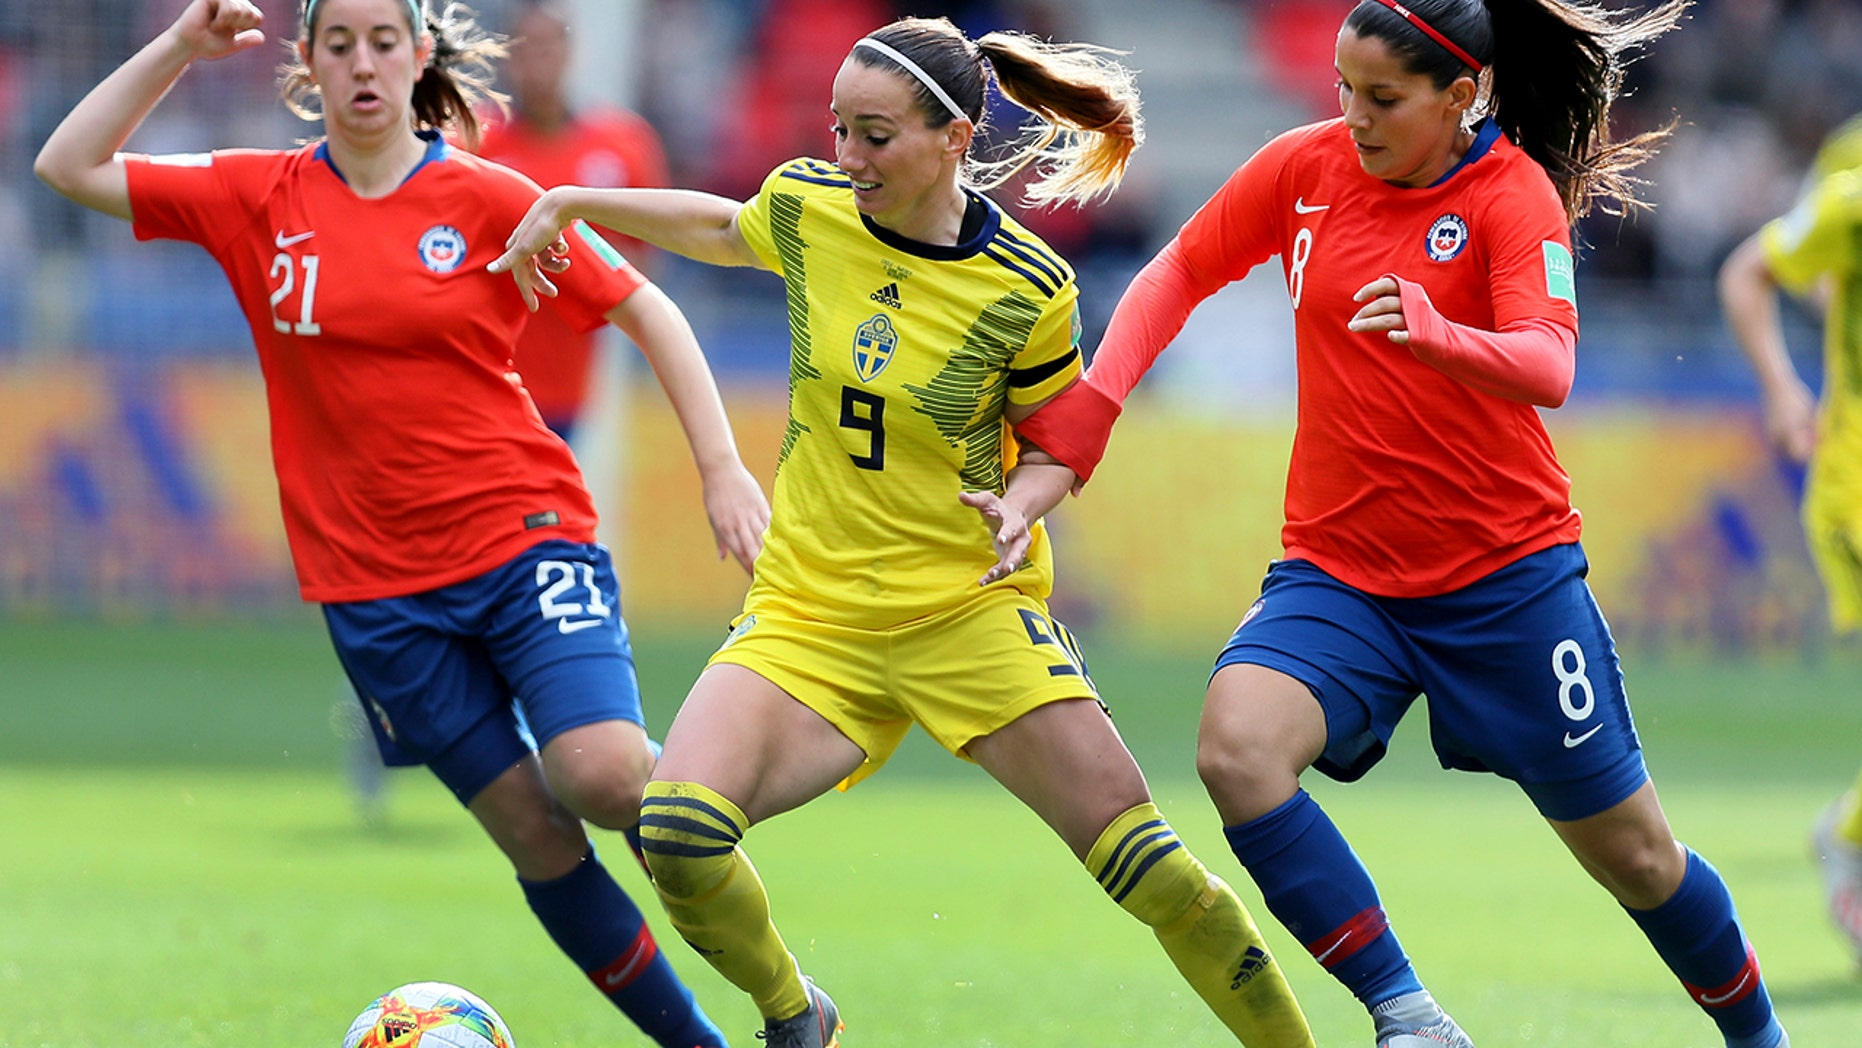 Sweden's Kosovare Asllani, center, and Chile's Karen Araya, right, plea for a round during a Women's World Cup Group F soccer compare between Chile and Sweden during a Roazhon Park in Rennes, France, Tuesday, Jun 11, 2019. (AP Photo/David Vincent)